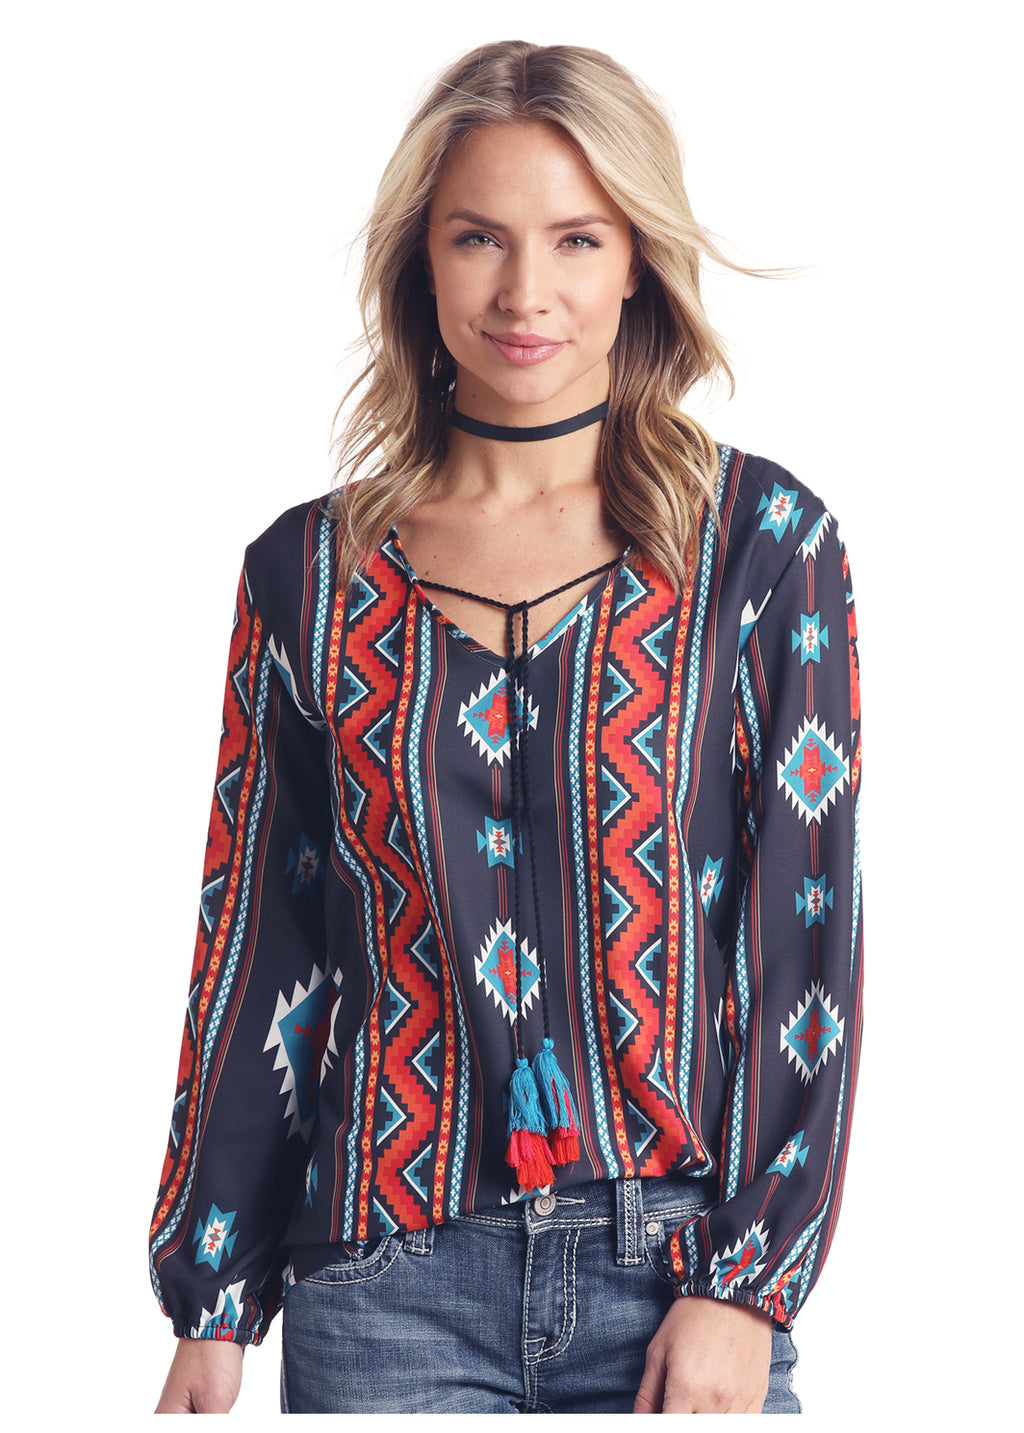 Panhandle Fashion Top (22-6416)